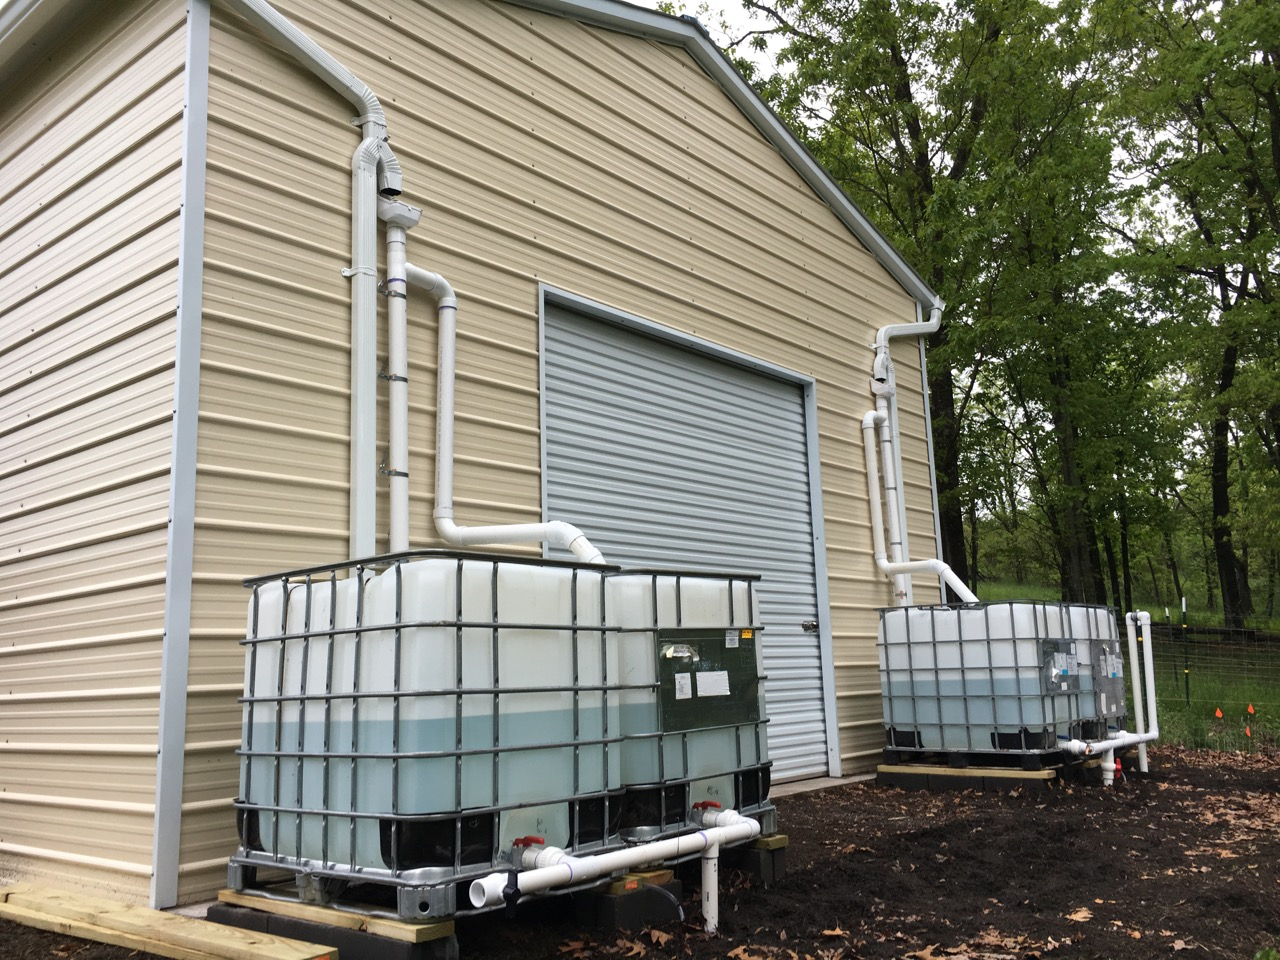 Great escape farms large rainwater harvesting system for Home rainwater collection